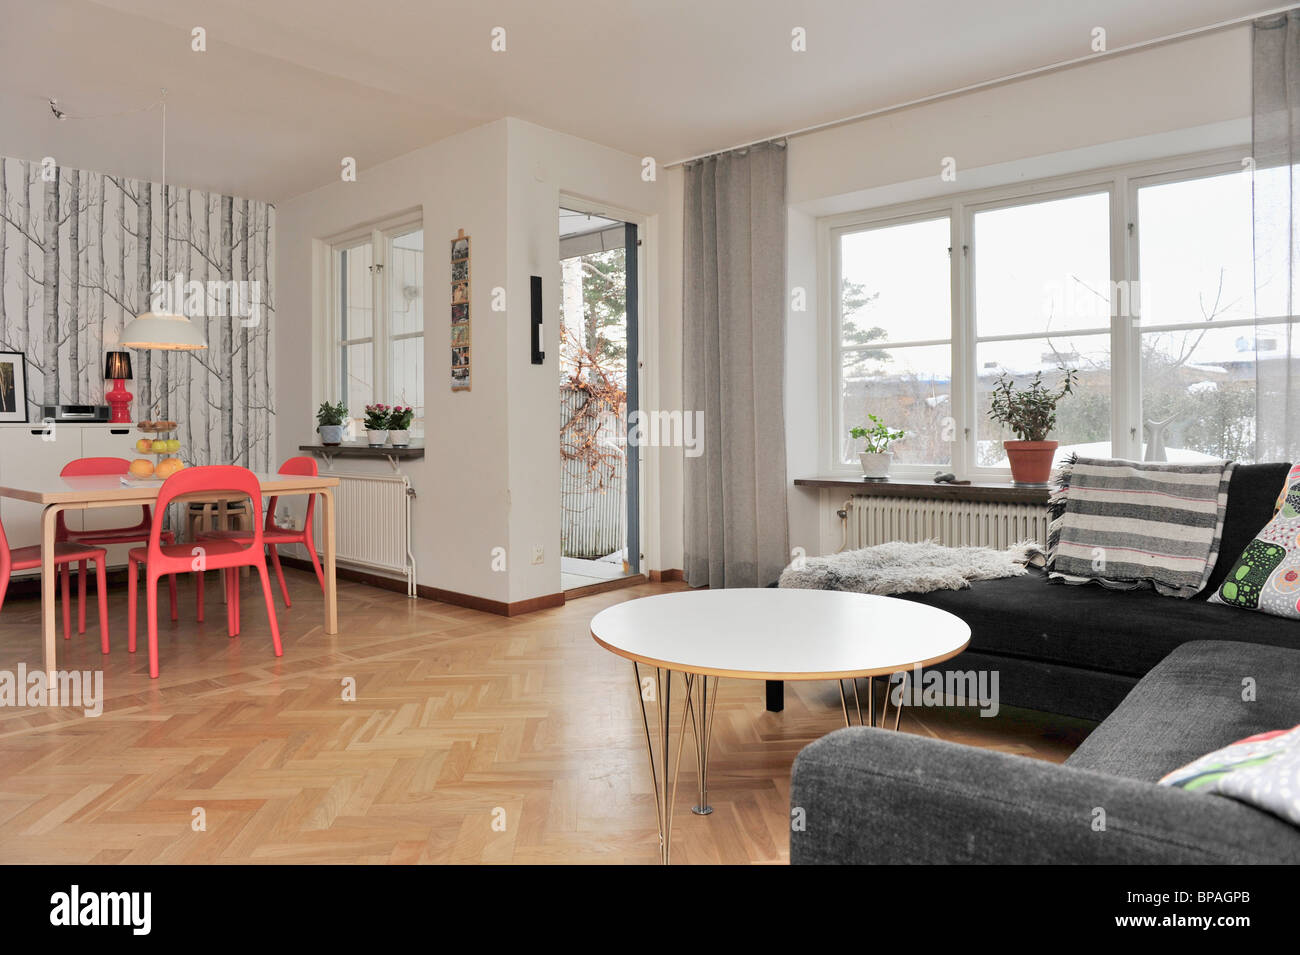 Swedish Living Room Swedish Living Room Stock Photos Swedish Living Room Stock